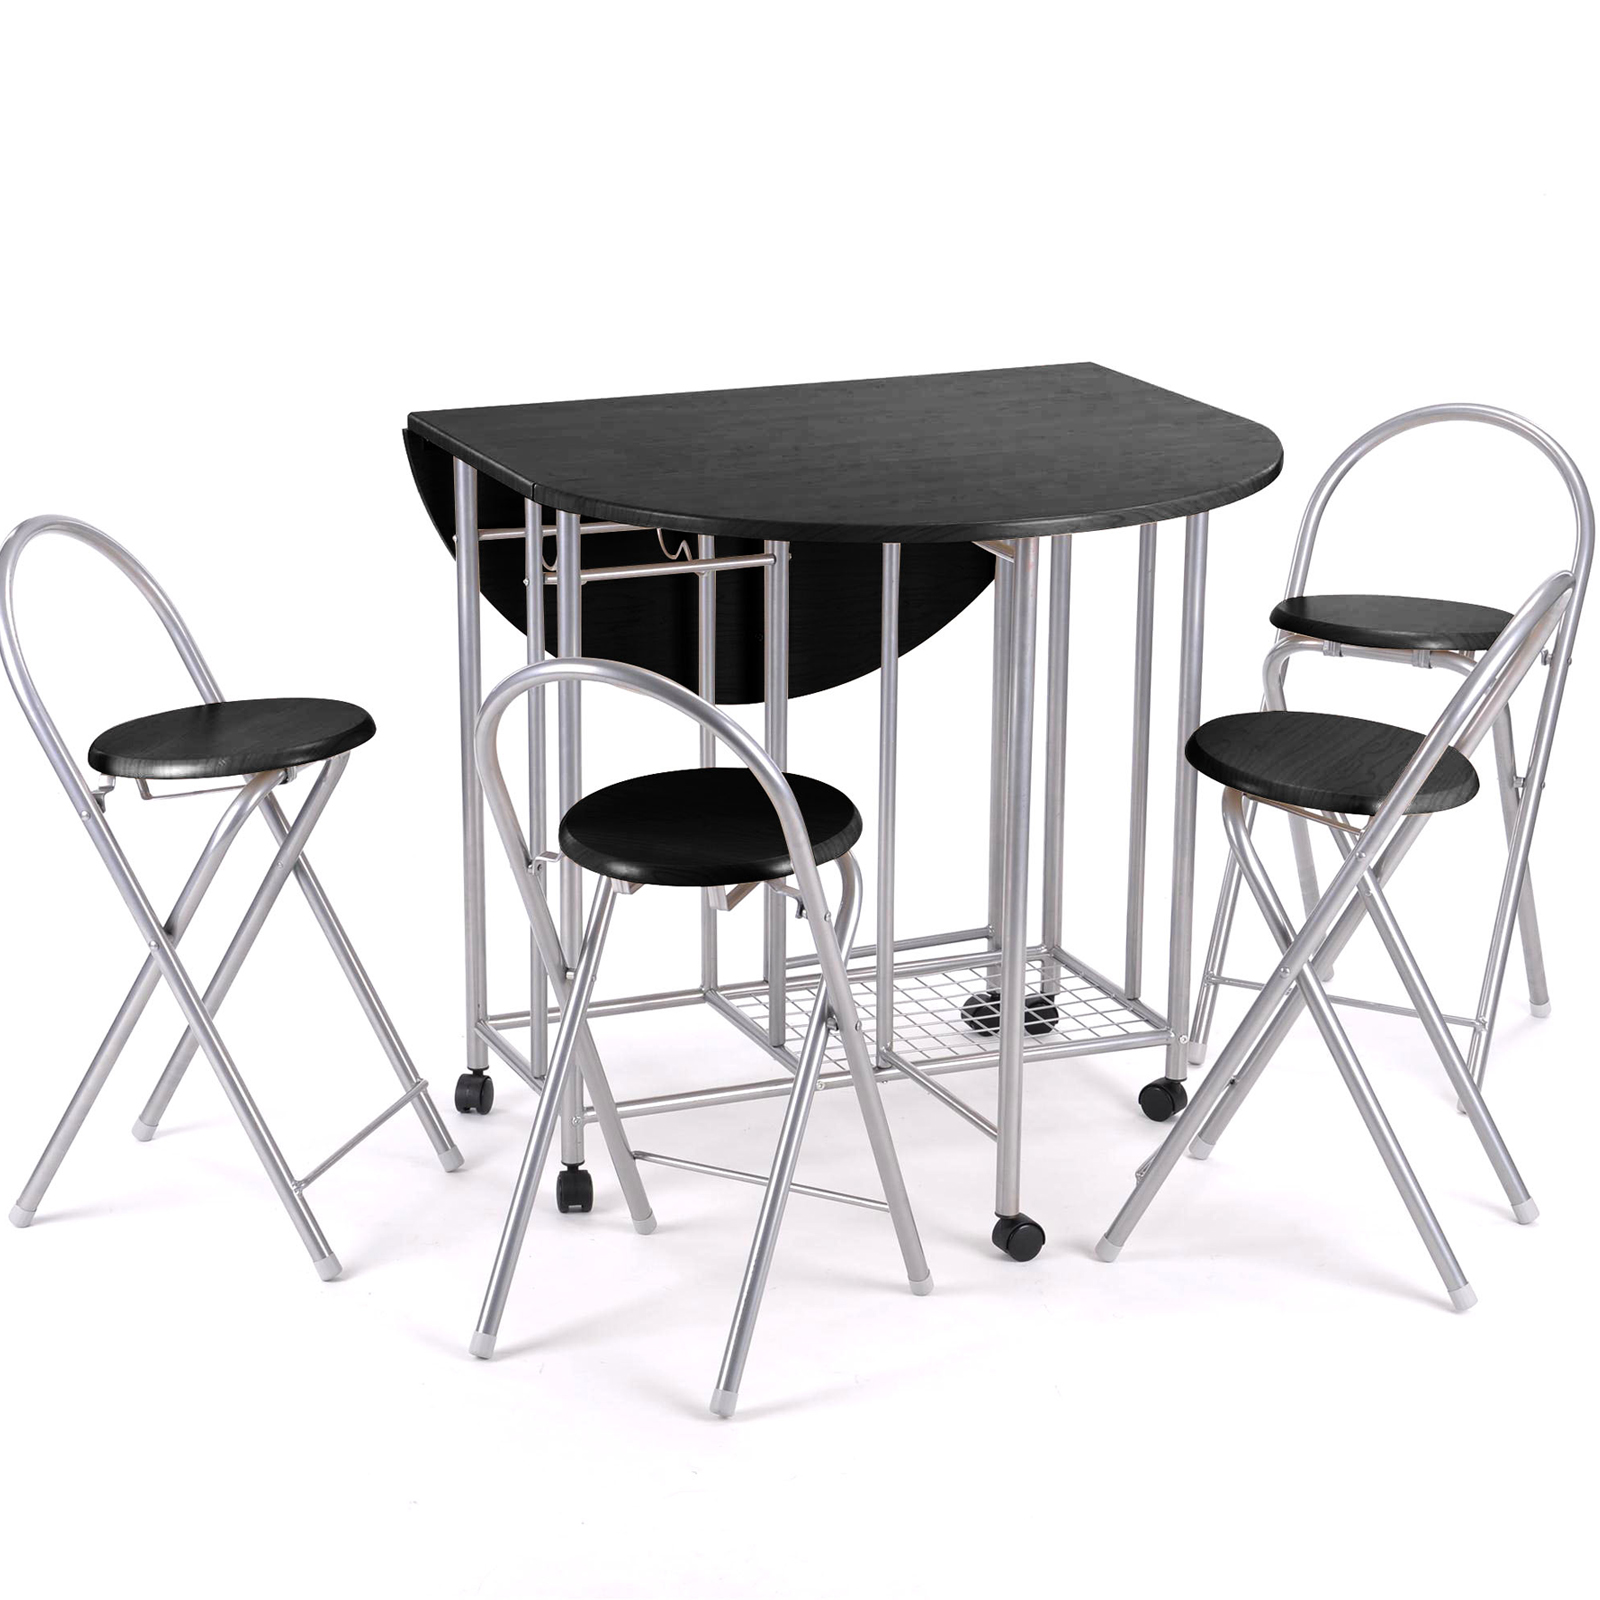 black folding table and chairs set rent tables nj 5pc kitchen dinette dinning